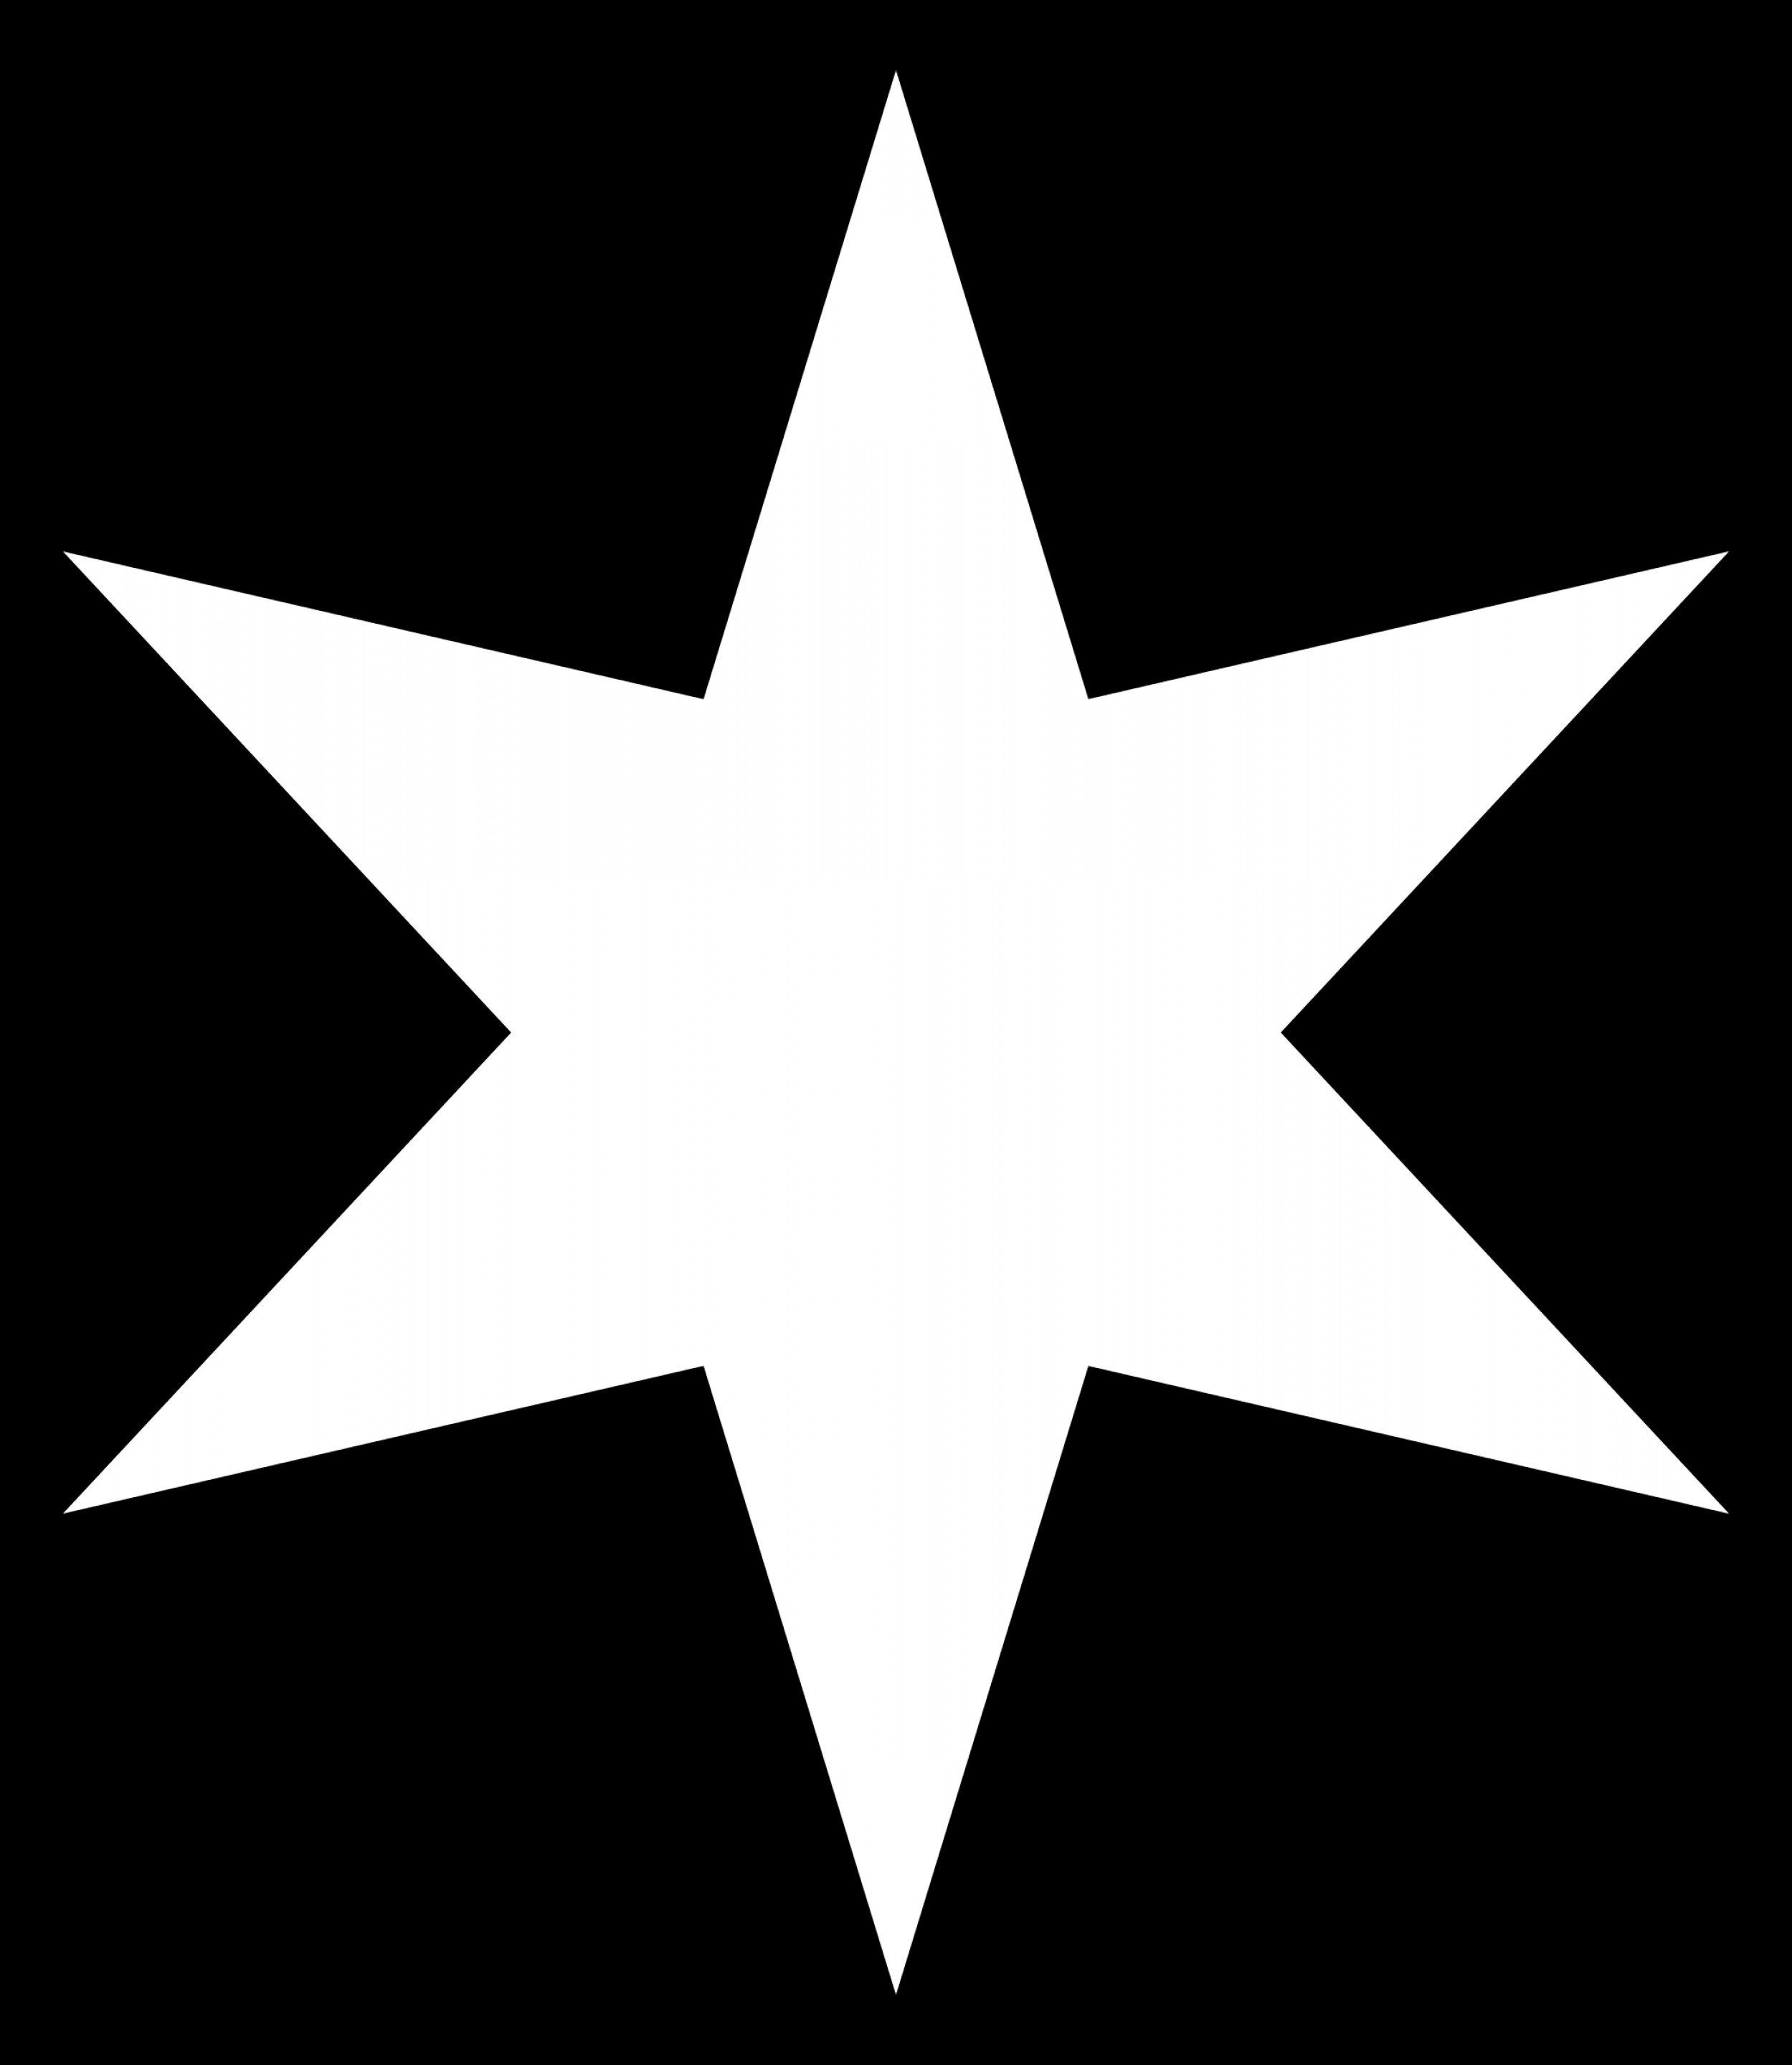 4 Point Nautical Star Vector: Point Star Clipart Black And White